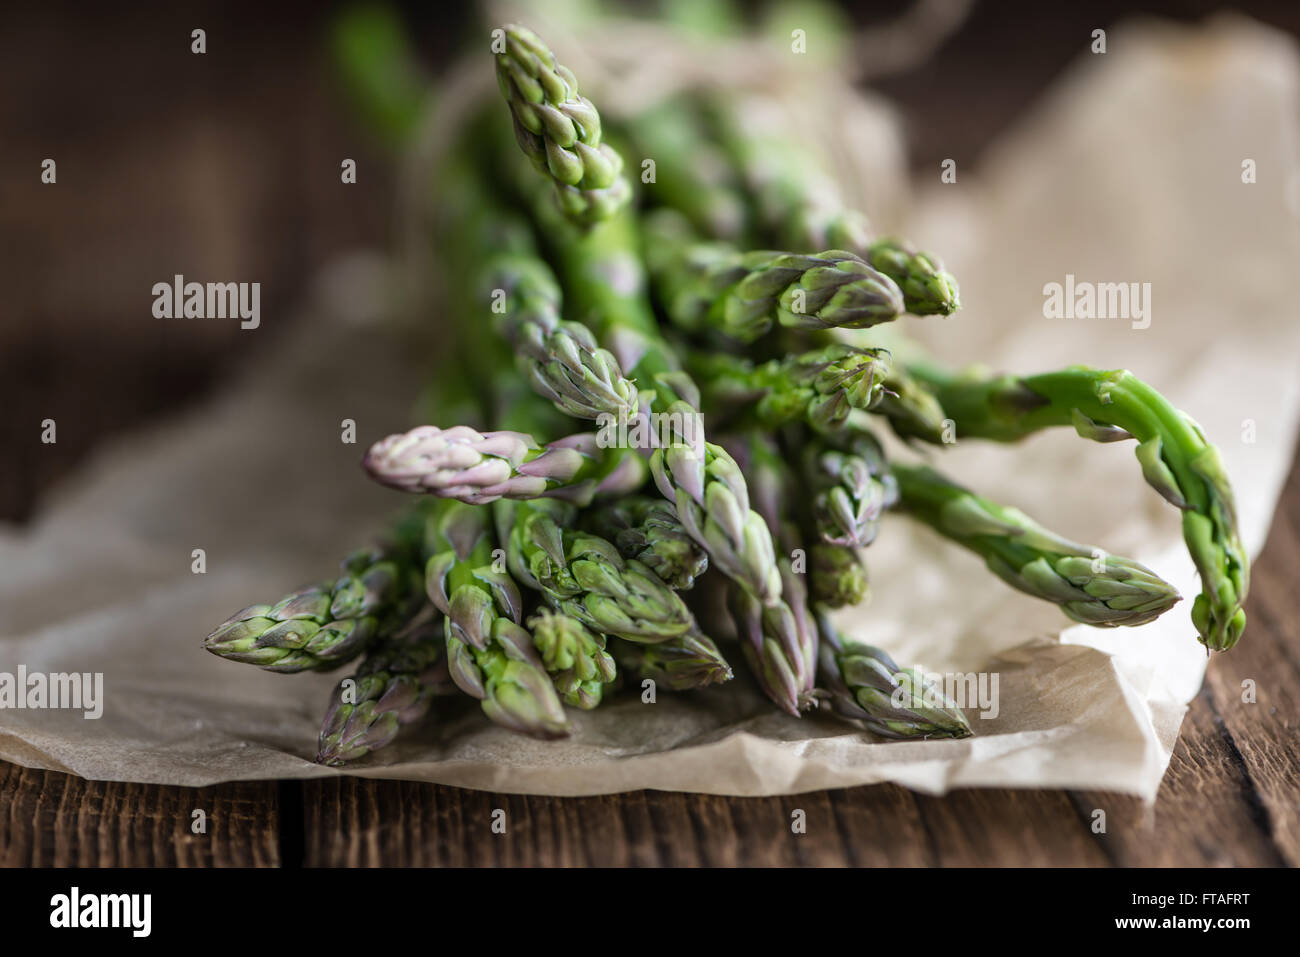 Portion of green Asparagus (close-up shot) on wooden background - Stock Image